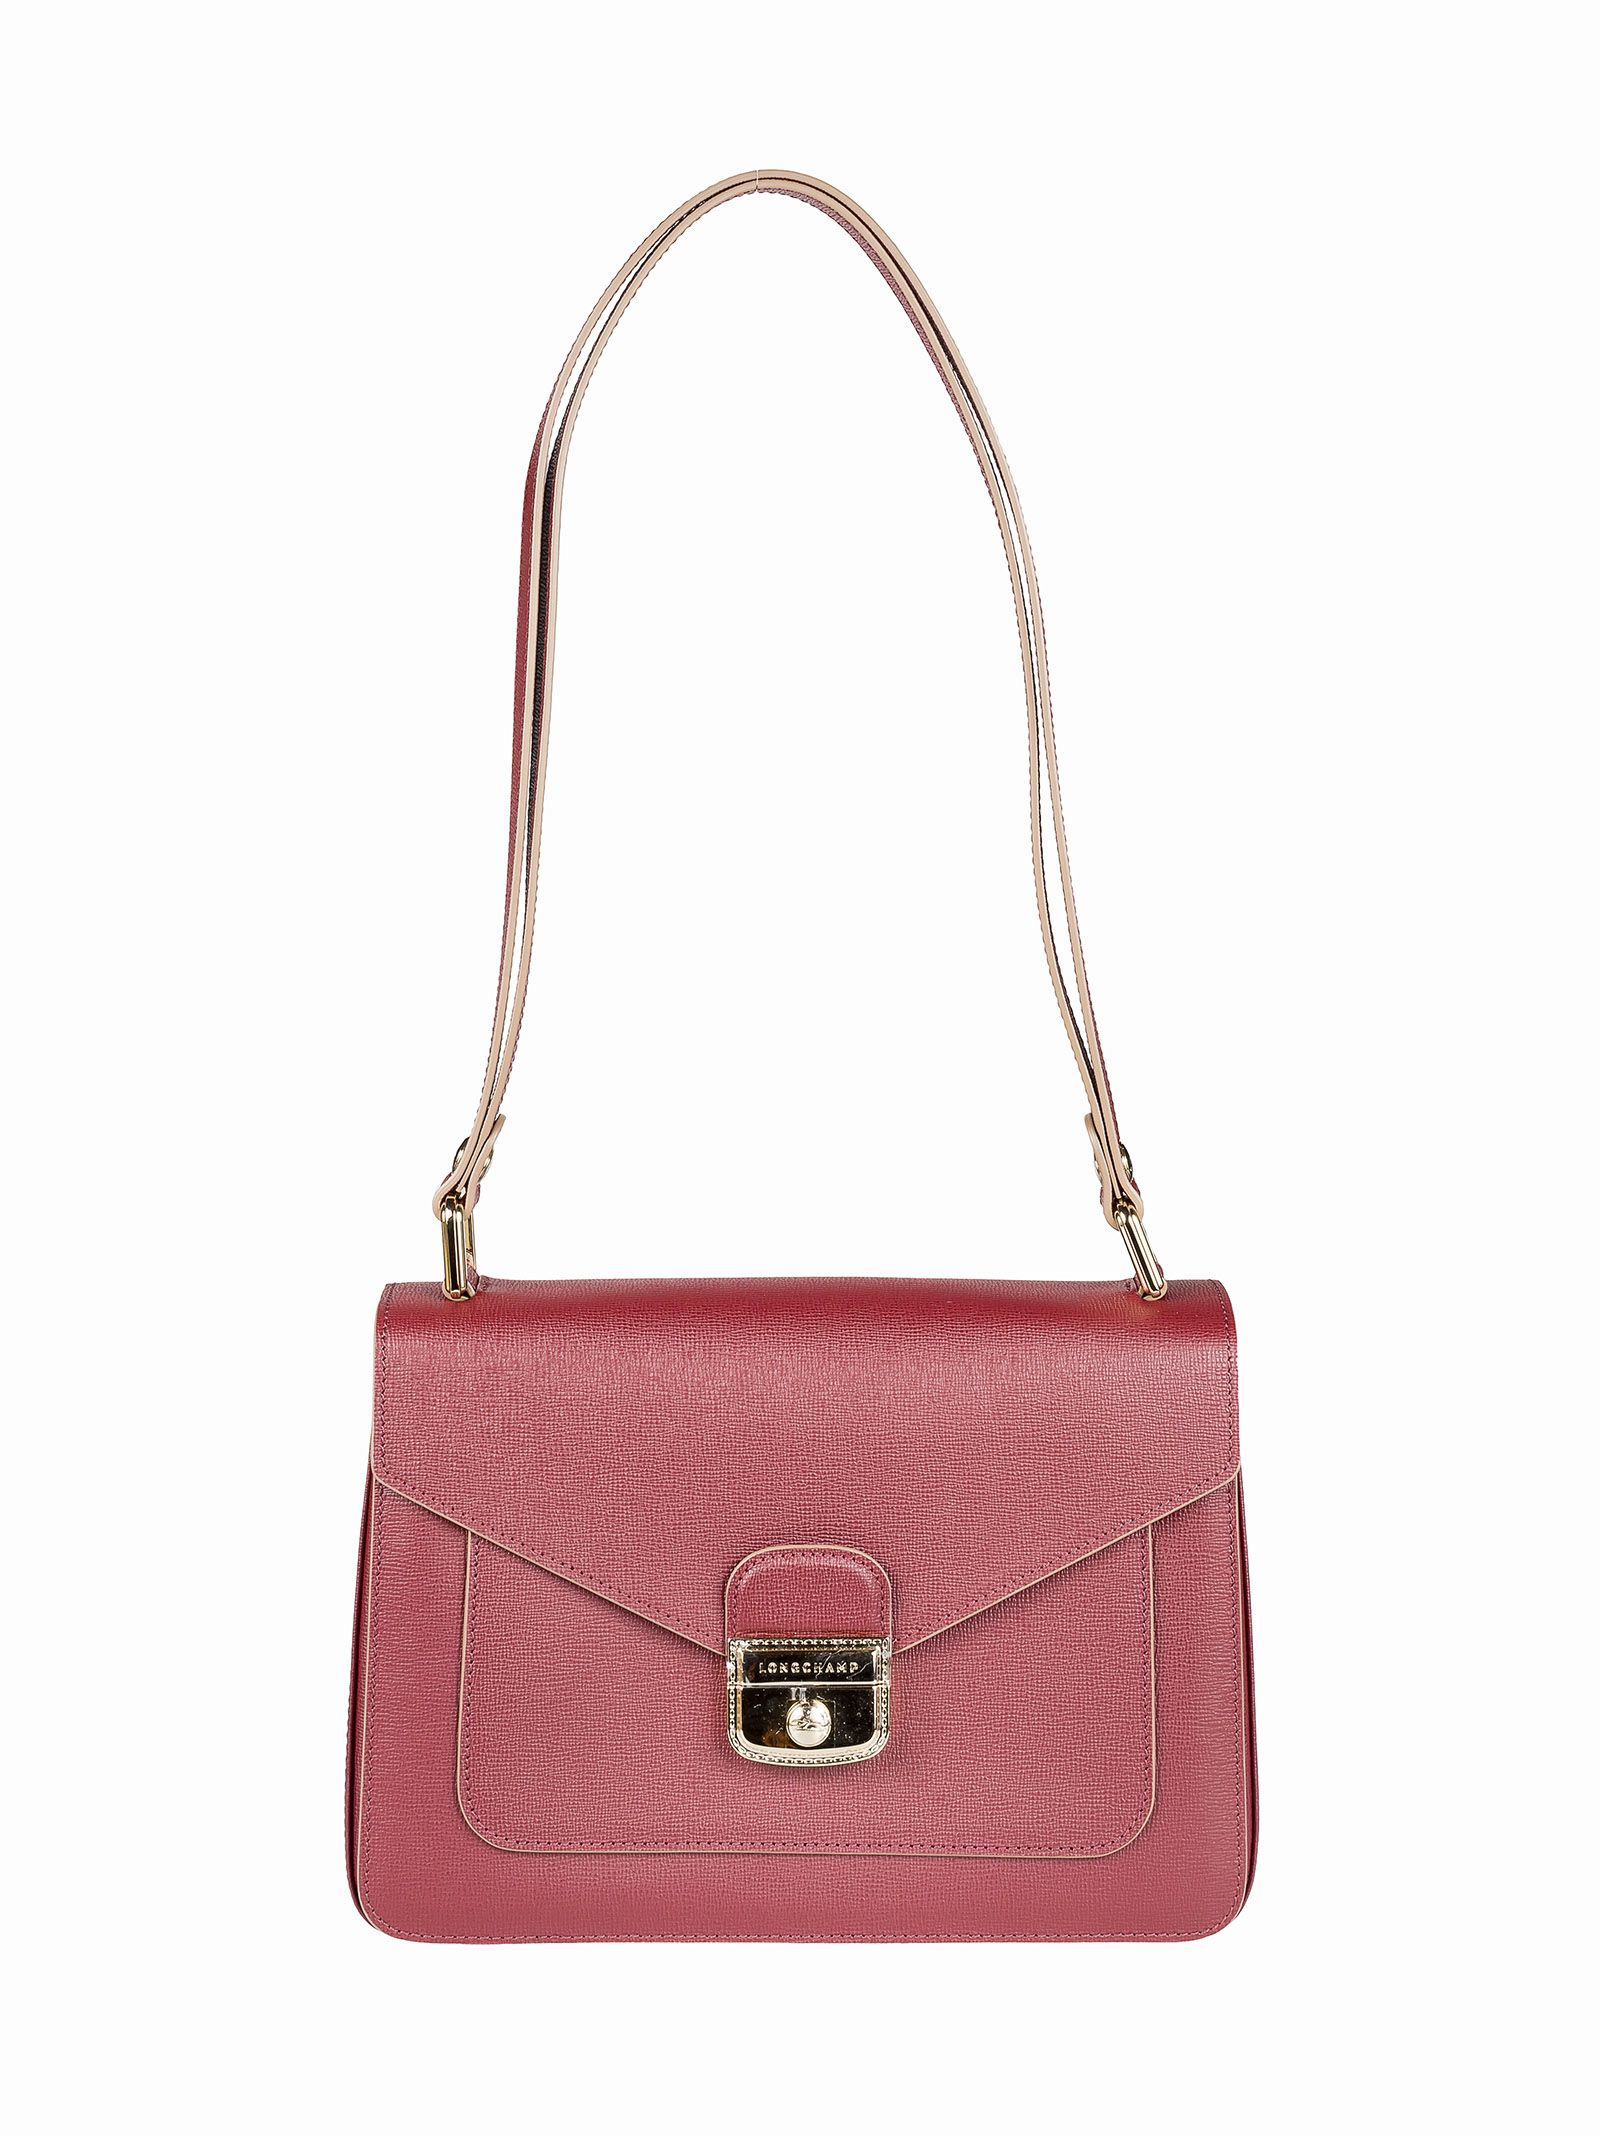 Longchamp Le Pliage Heritage Shoulder Bag